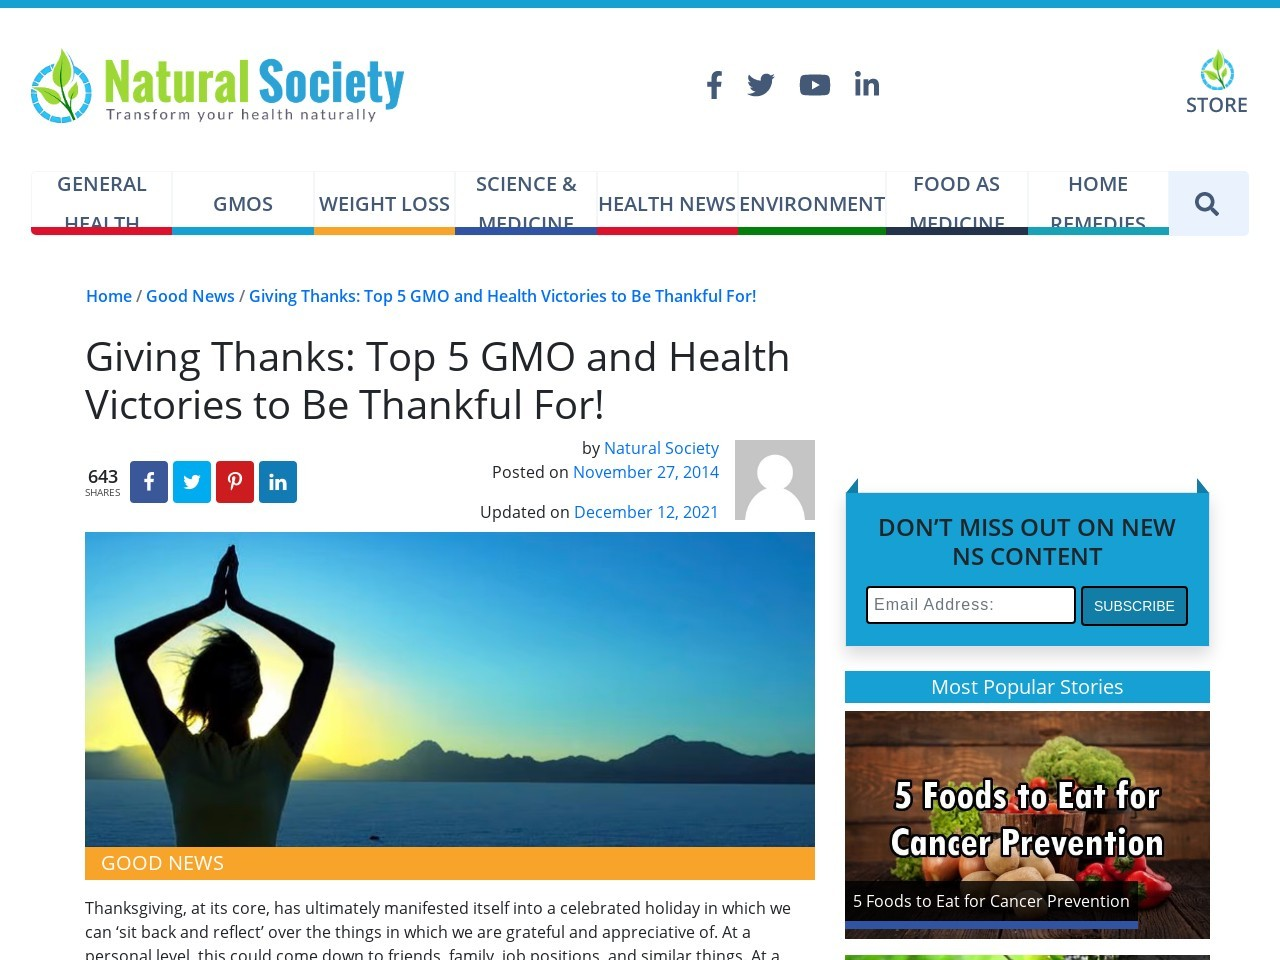 Giving Thanks: Top 5 GMO and Health Victories to Be Thankful For!